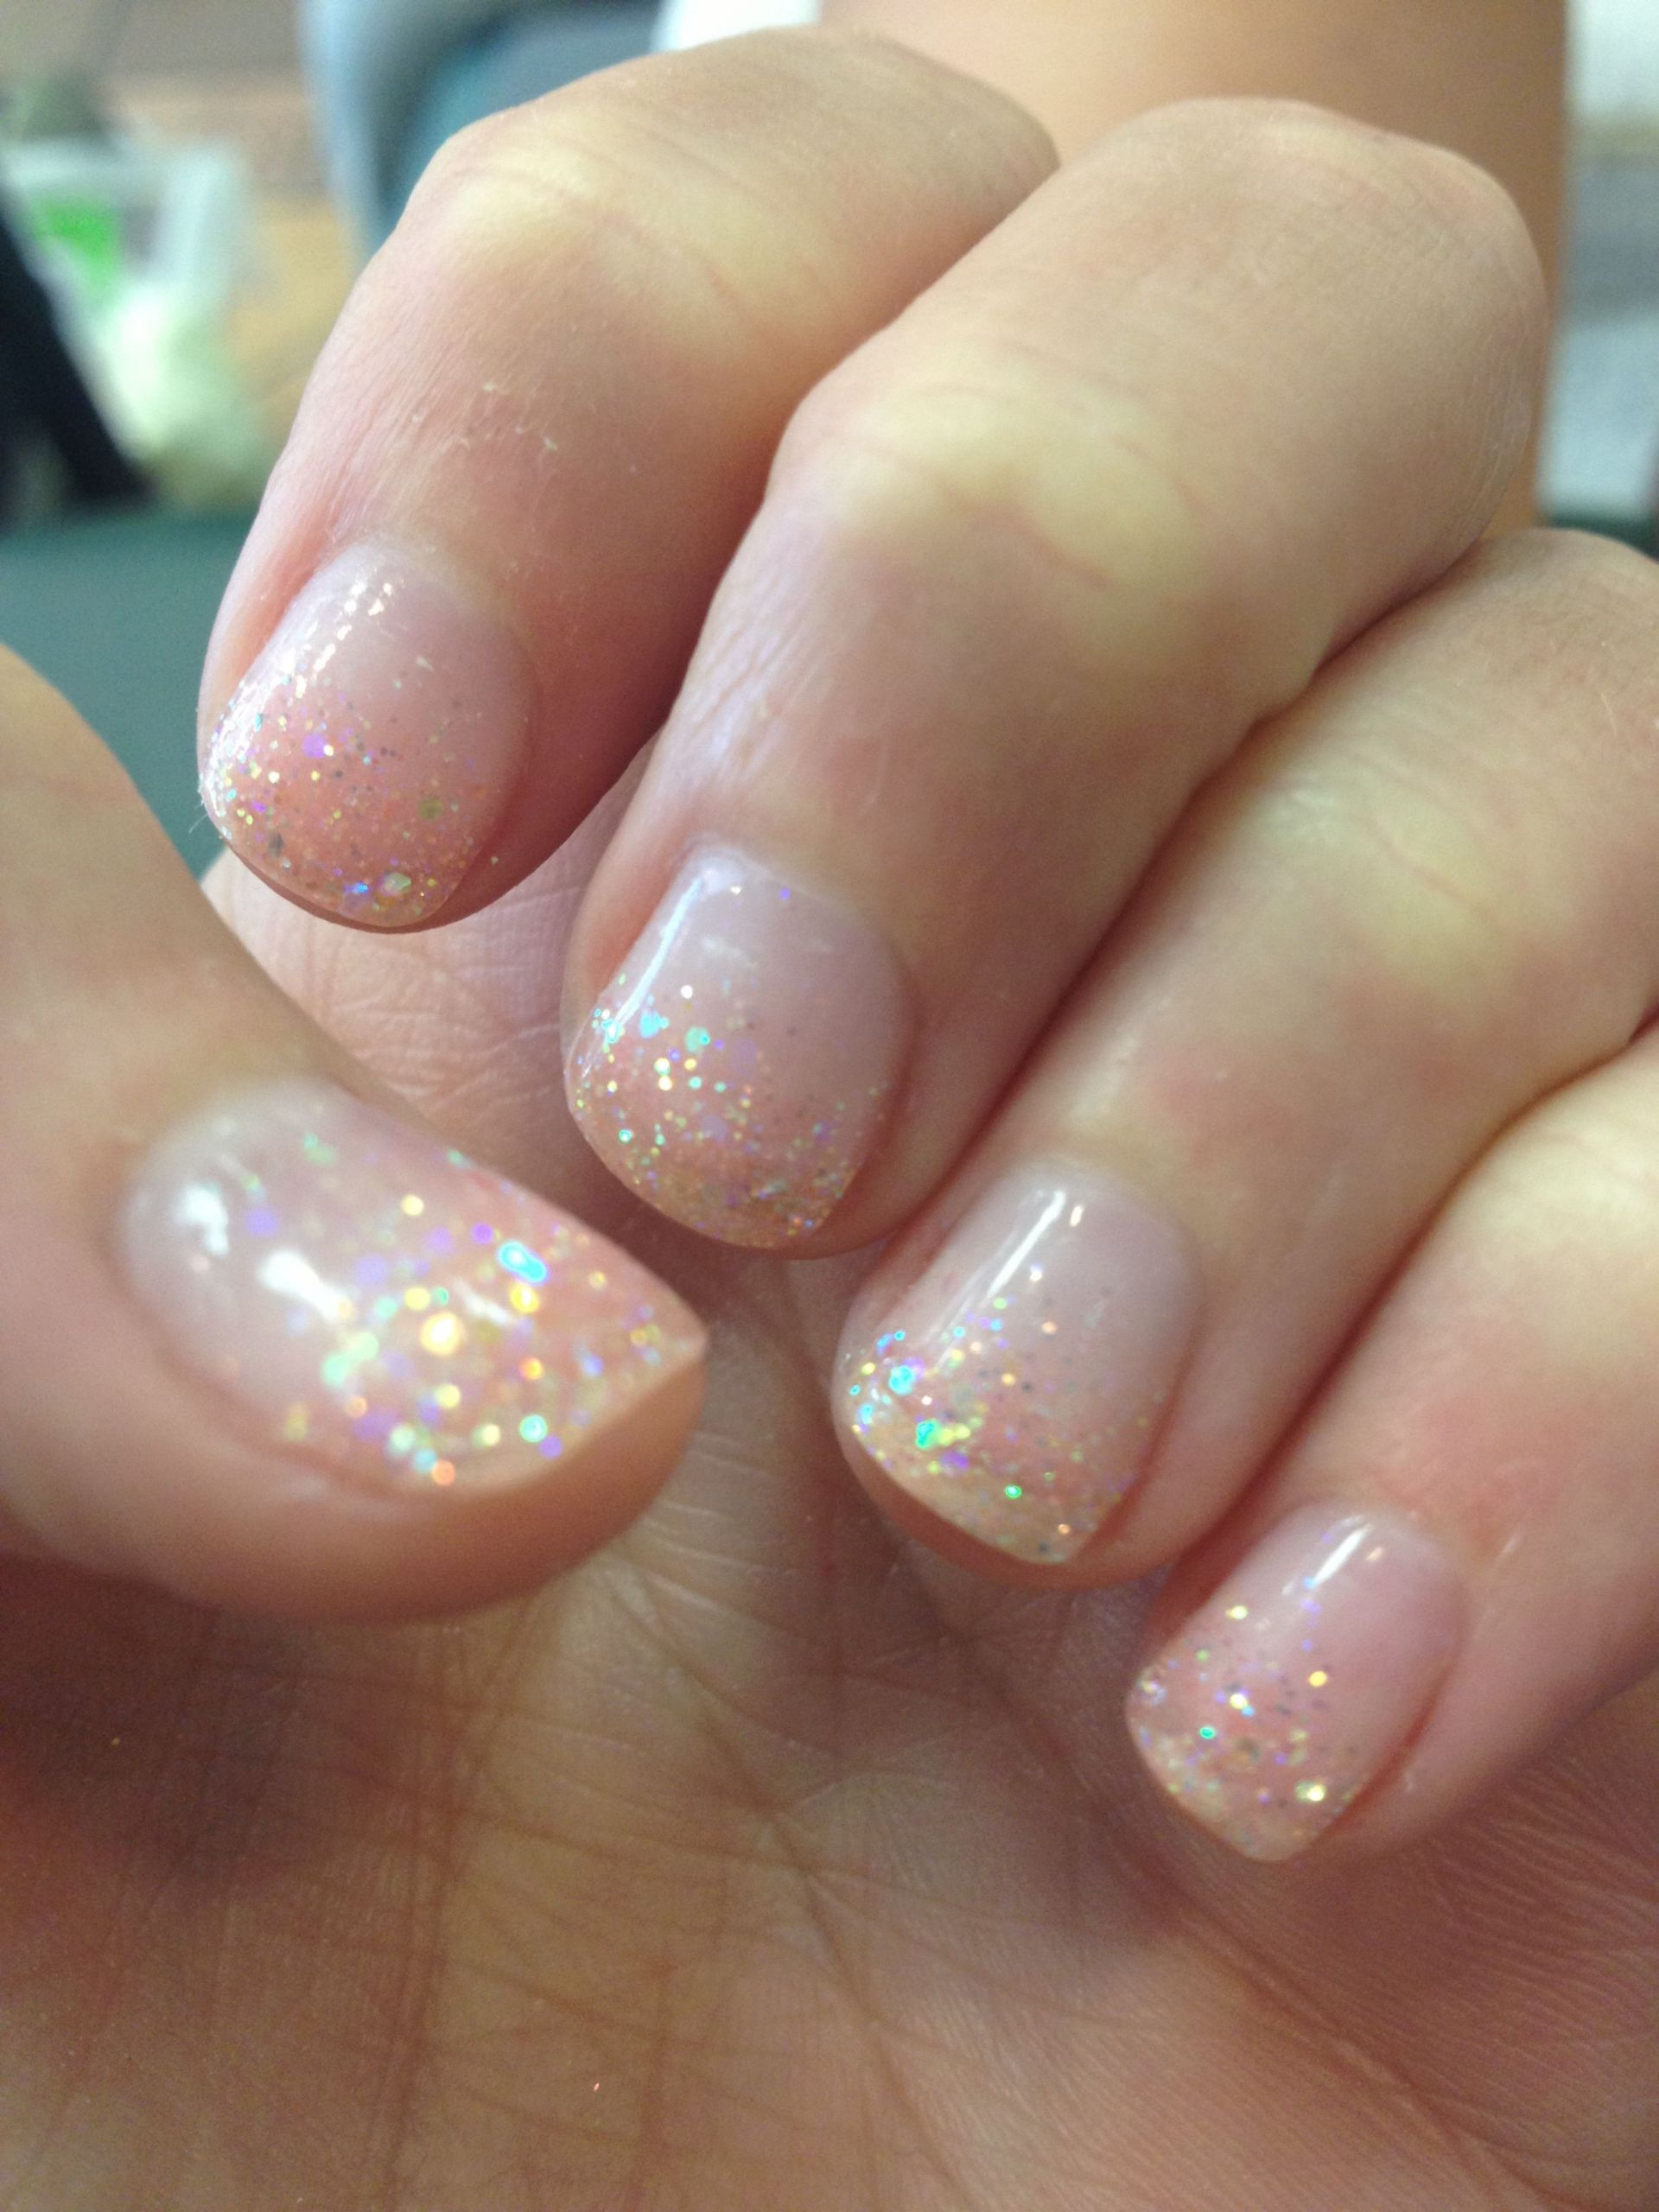 Clear Nails With Glitter  Best 25 Clear gel nail polish ideas on Pinterest